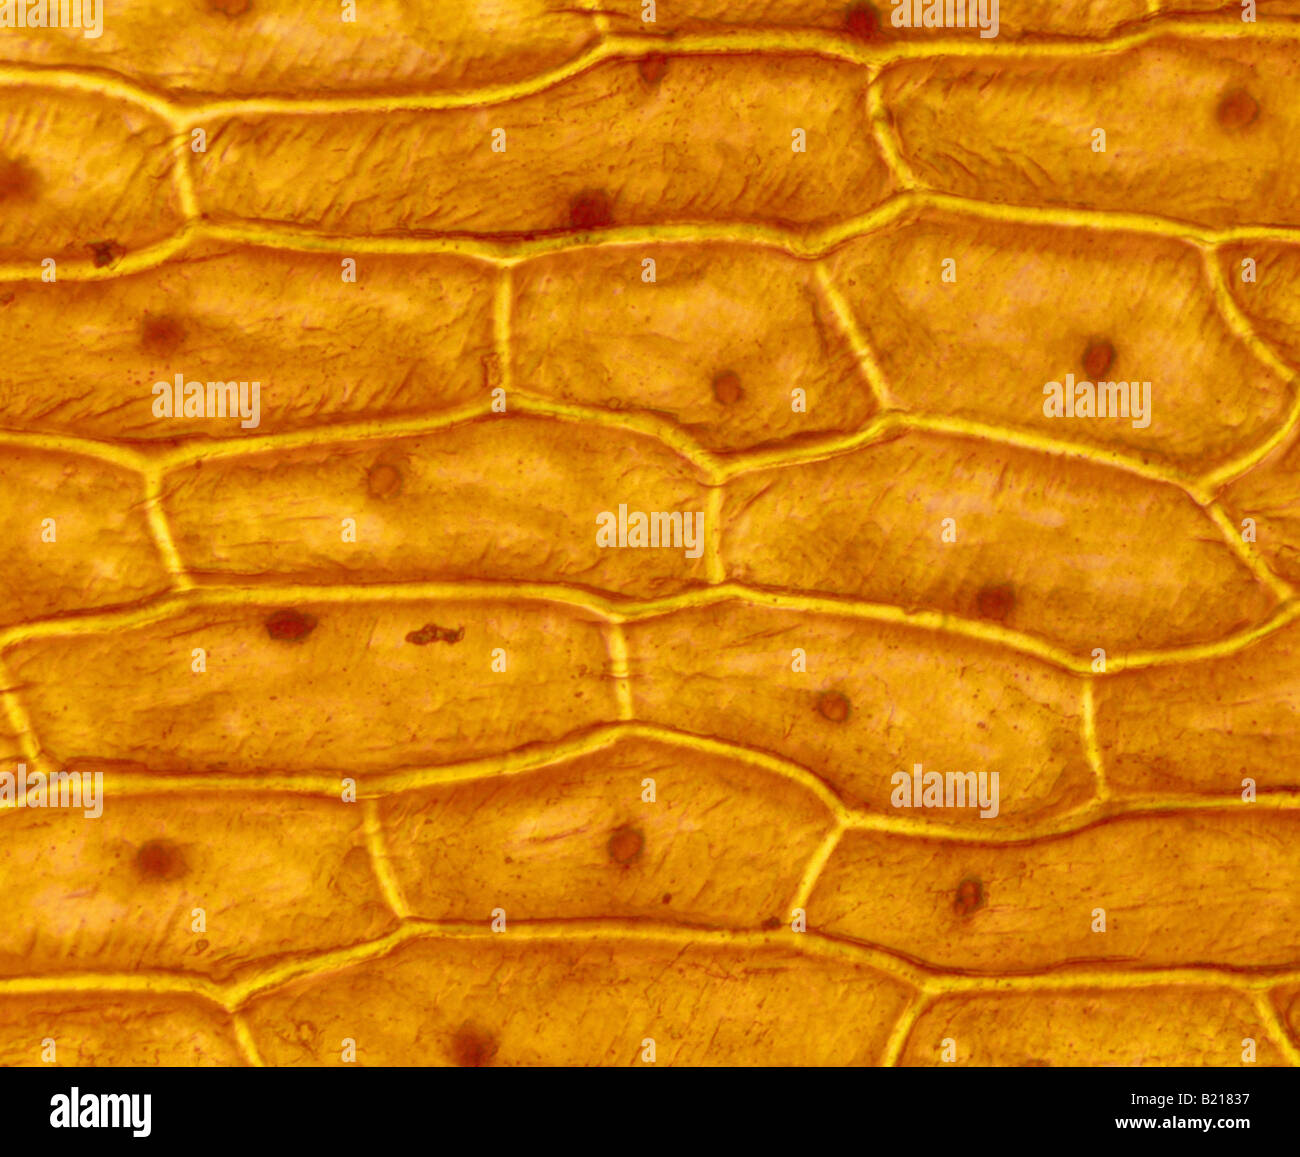 onion cell